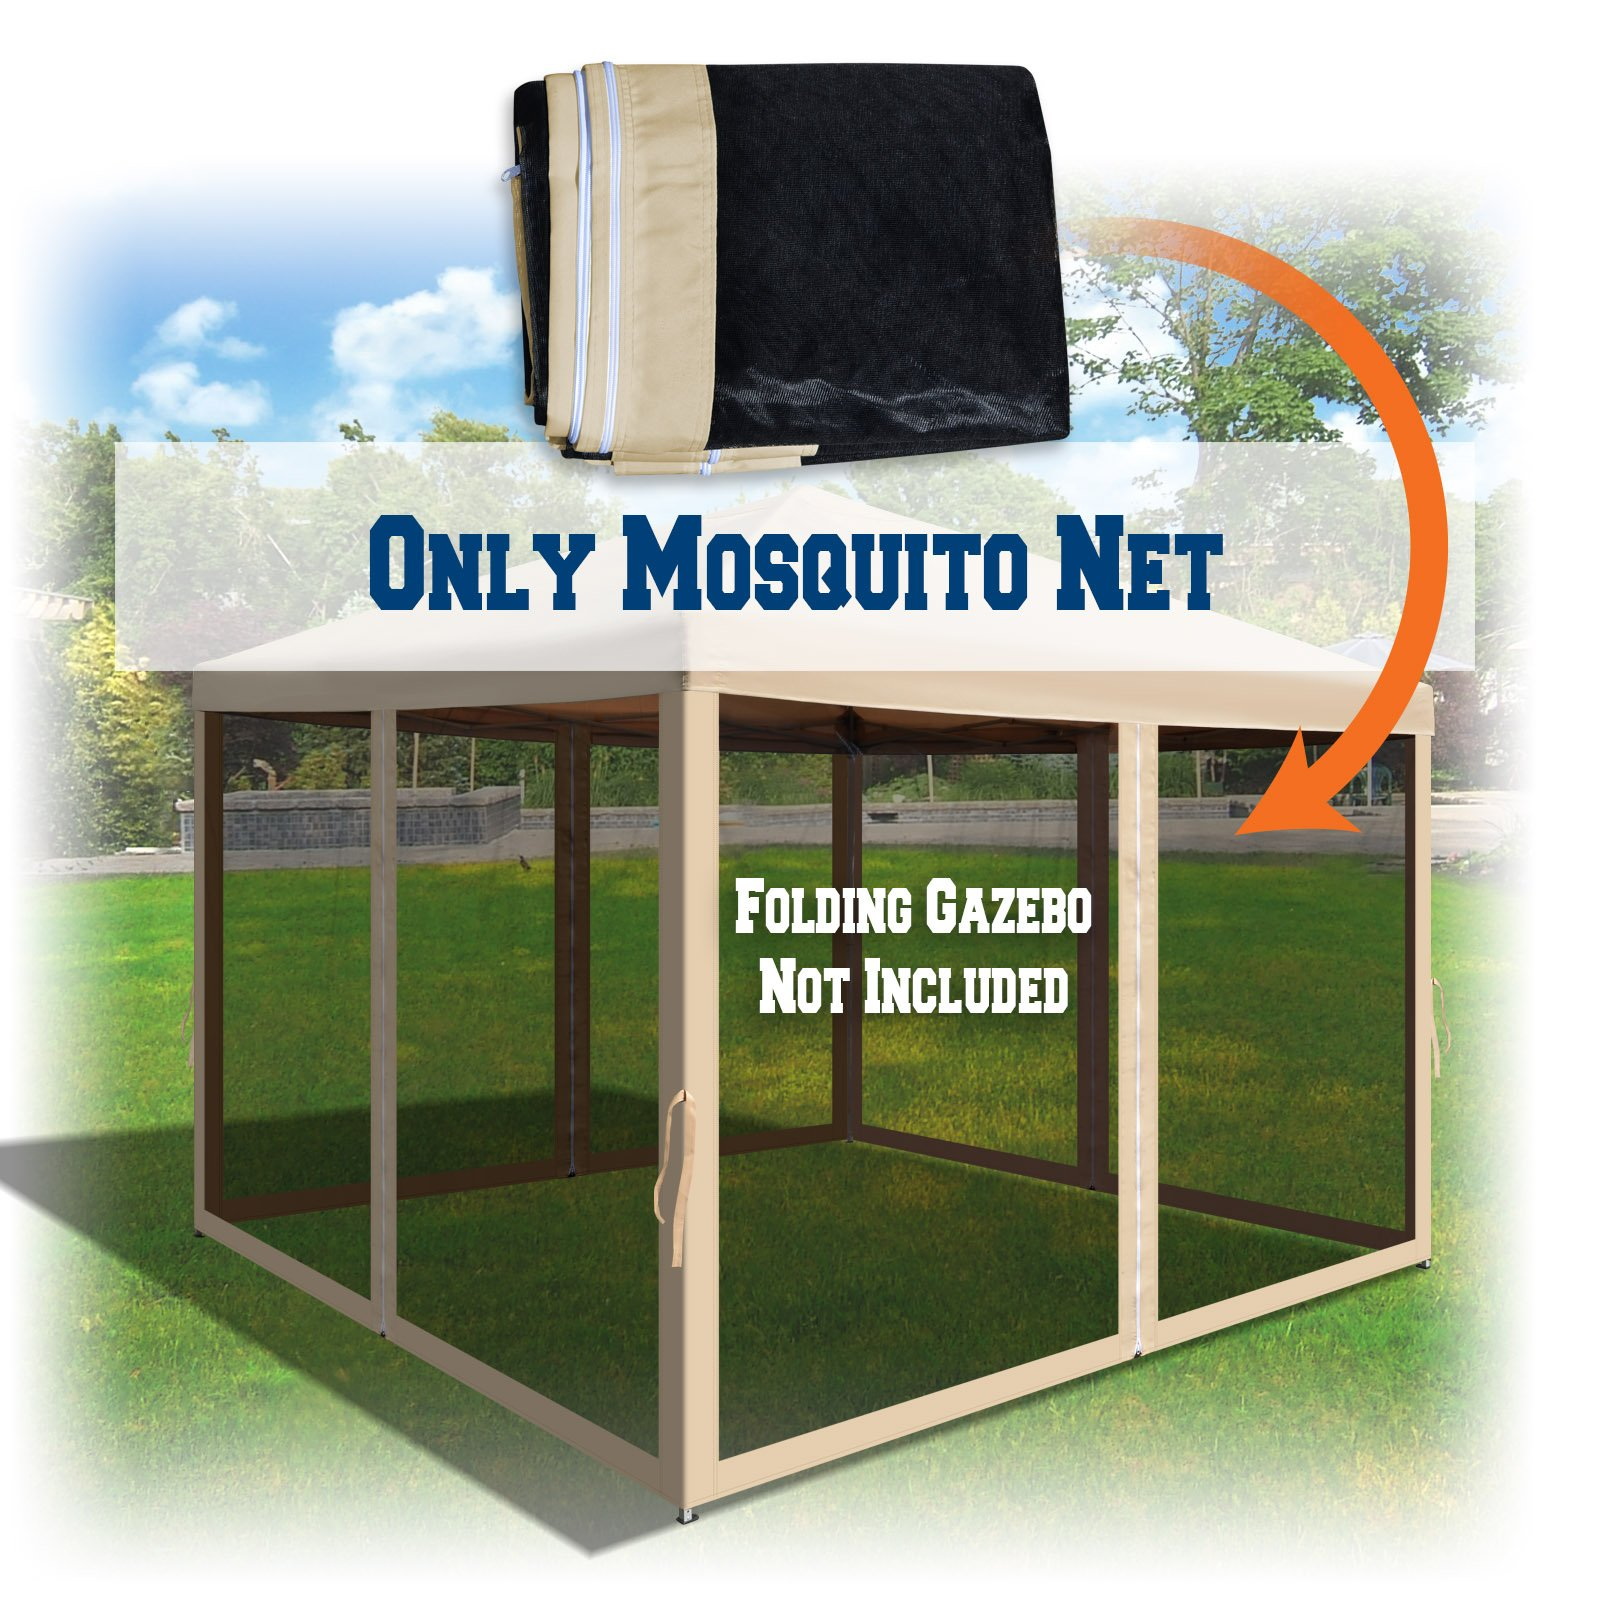 BenefitUSA Canopies 10' L X 6.4' W Mesh Wall Sidewalls for Pop Up Canopy Screen Room, Pack of 4 (Walls Only) (Beige) by BenefitUSA